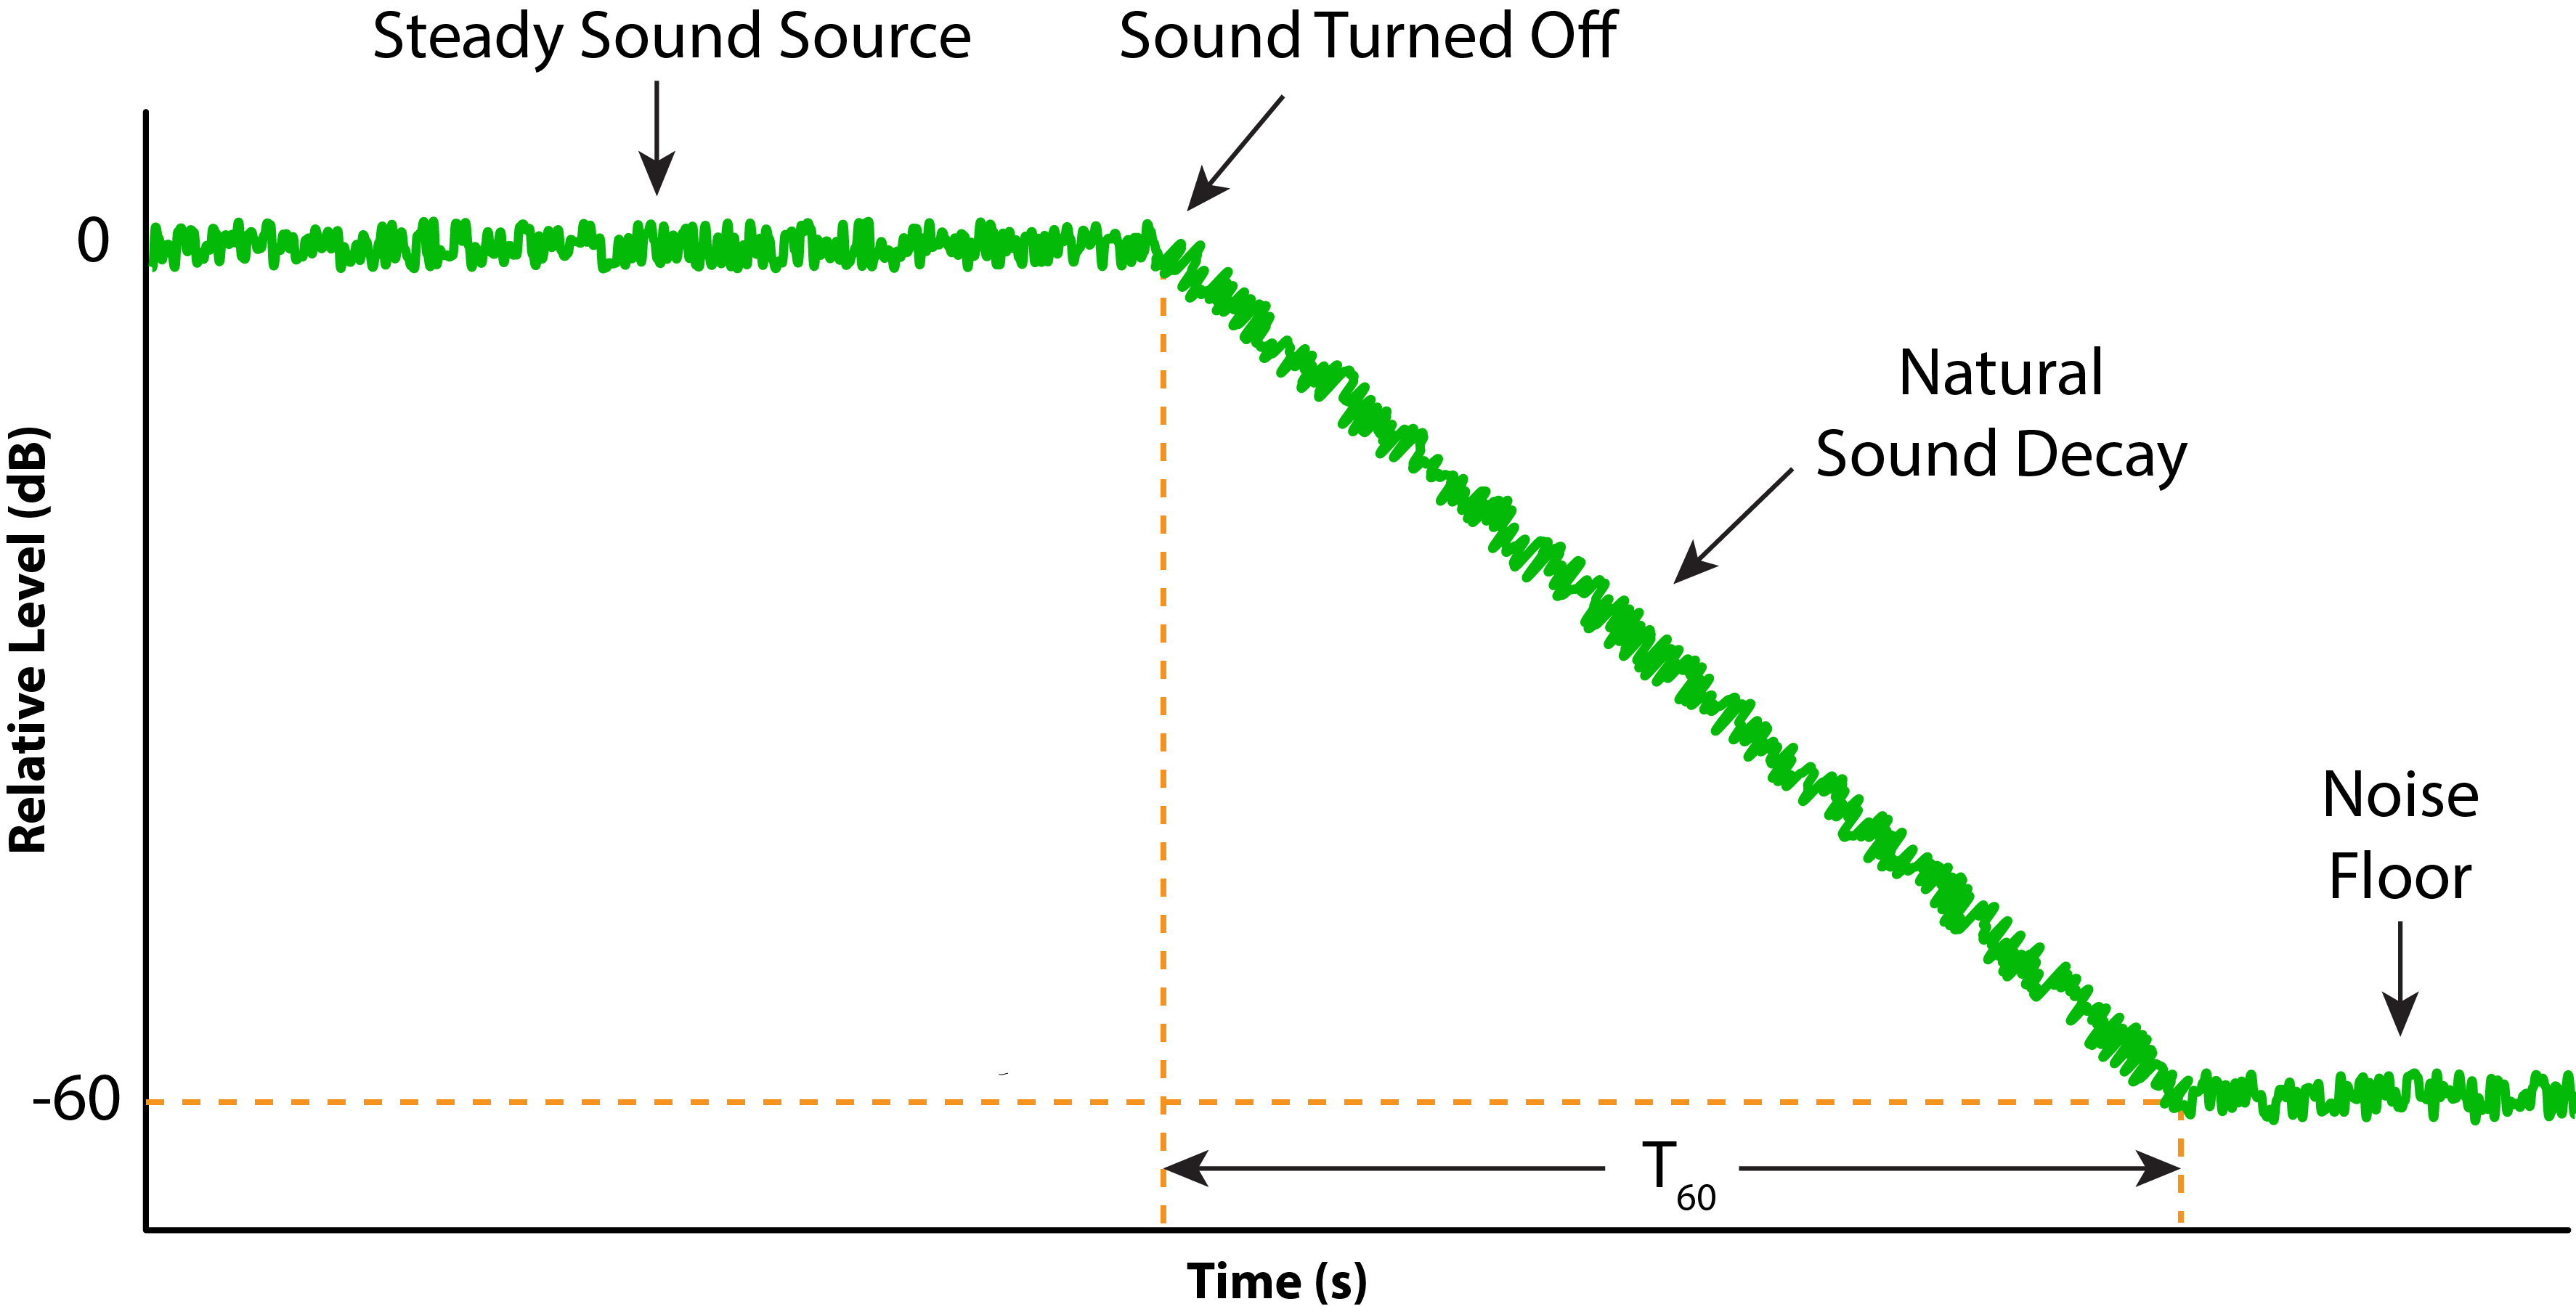 Figure 3 - One method of RT testing interrupts a steady noise source and times the room decay.